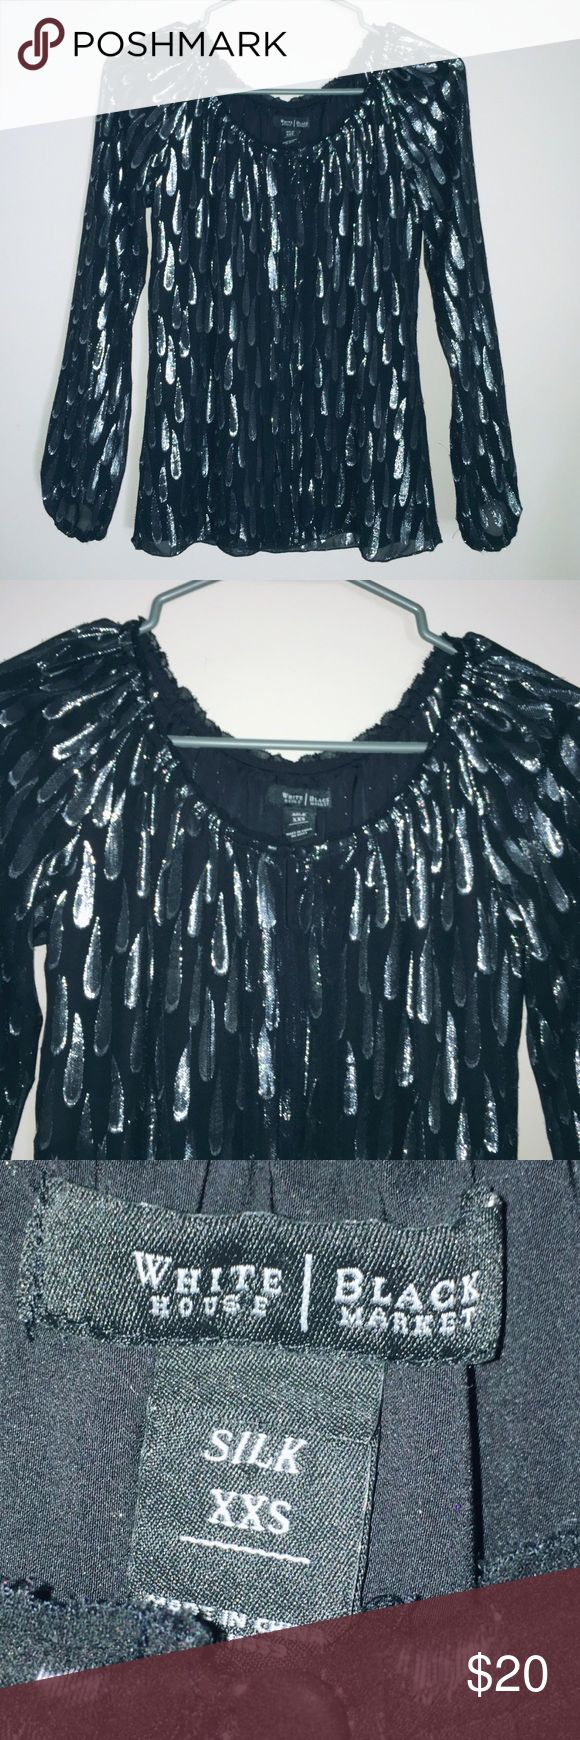 WHBM metallic blouse •excellent condition •White House Black Market •long sleeved •metallic detail •silk •arms are semi sheer •size xxs, could also fit xs White House Black Market Tops Blouses